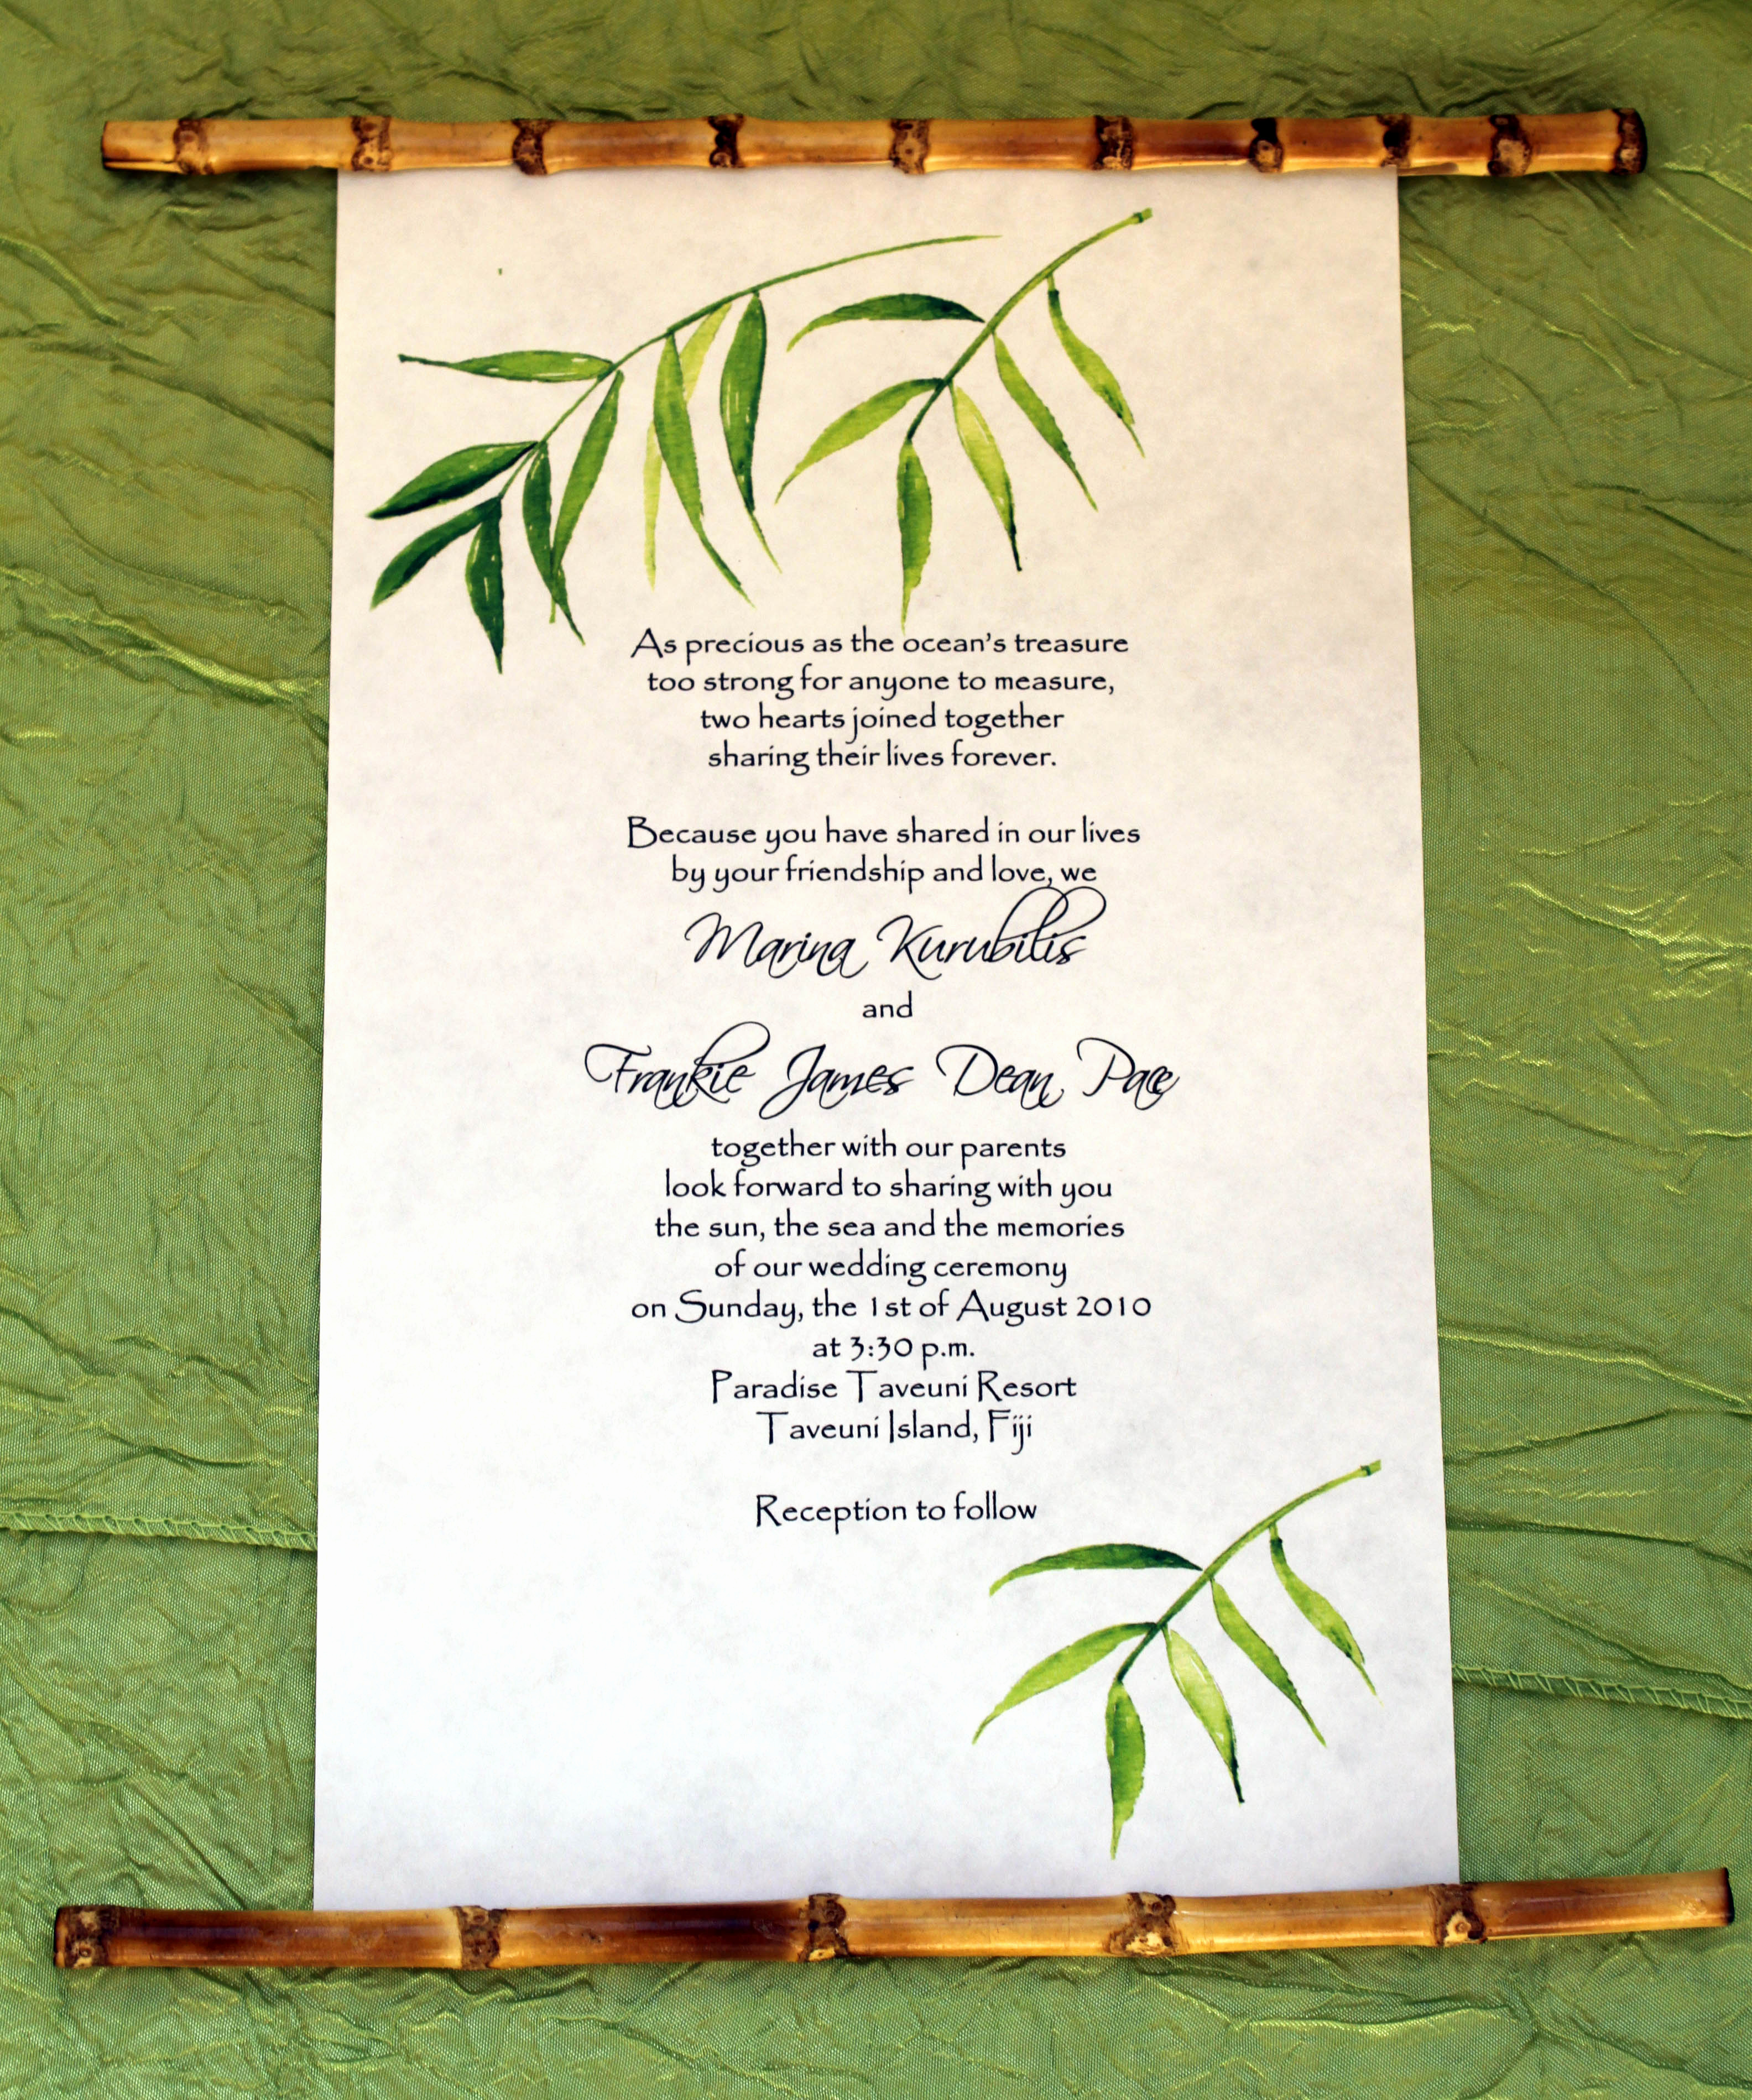 How to Make Scroll Invitation Awesome Bamboo Scroll Invitations From Designs by Lenila